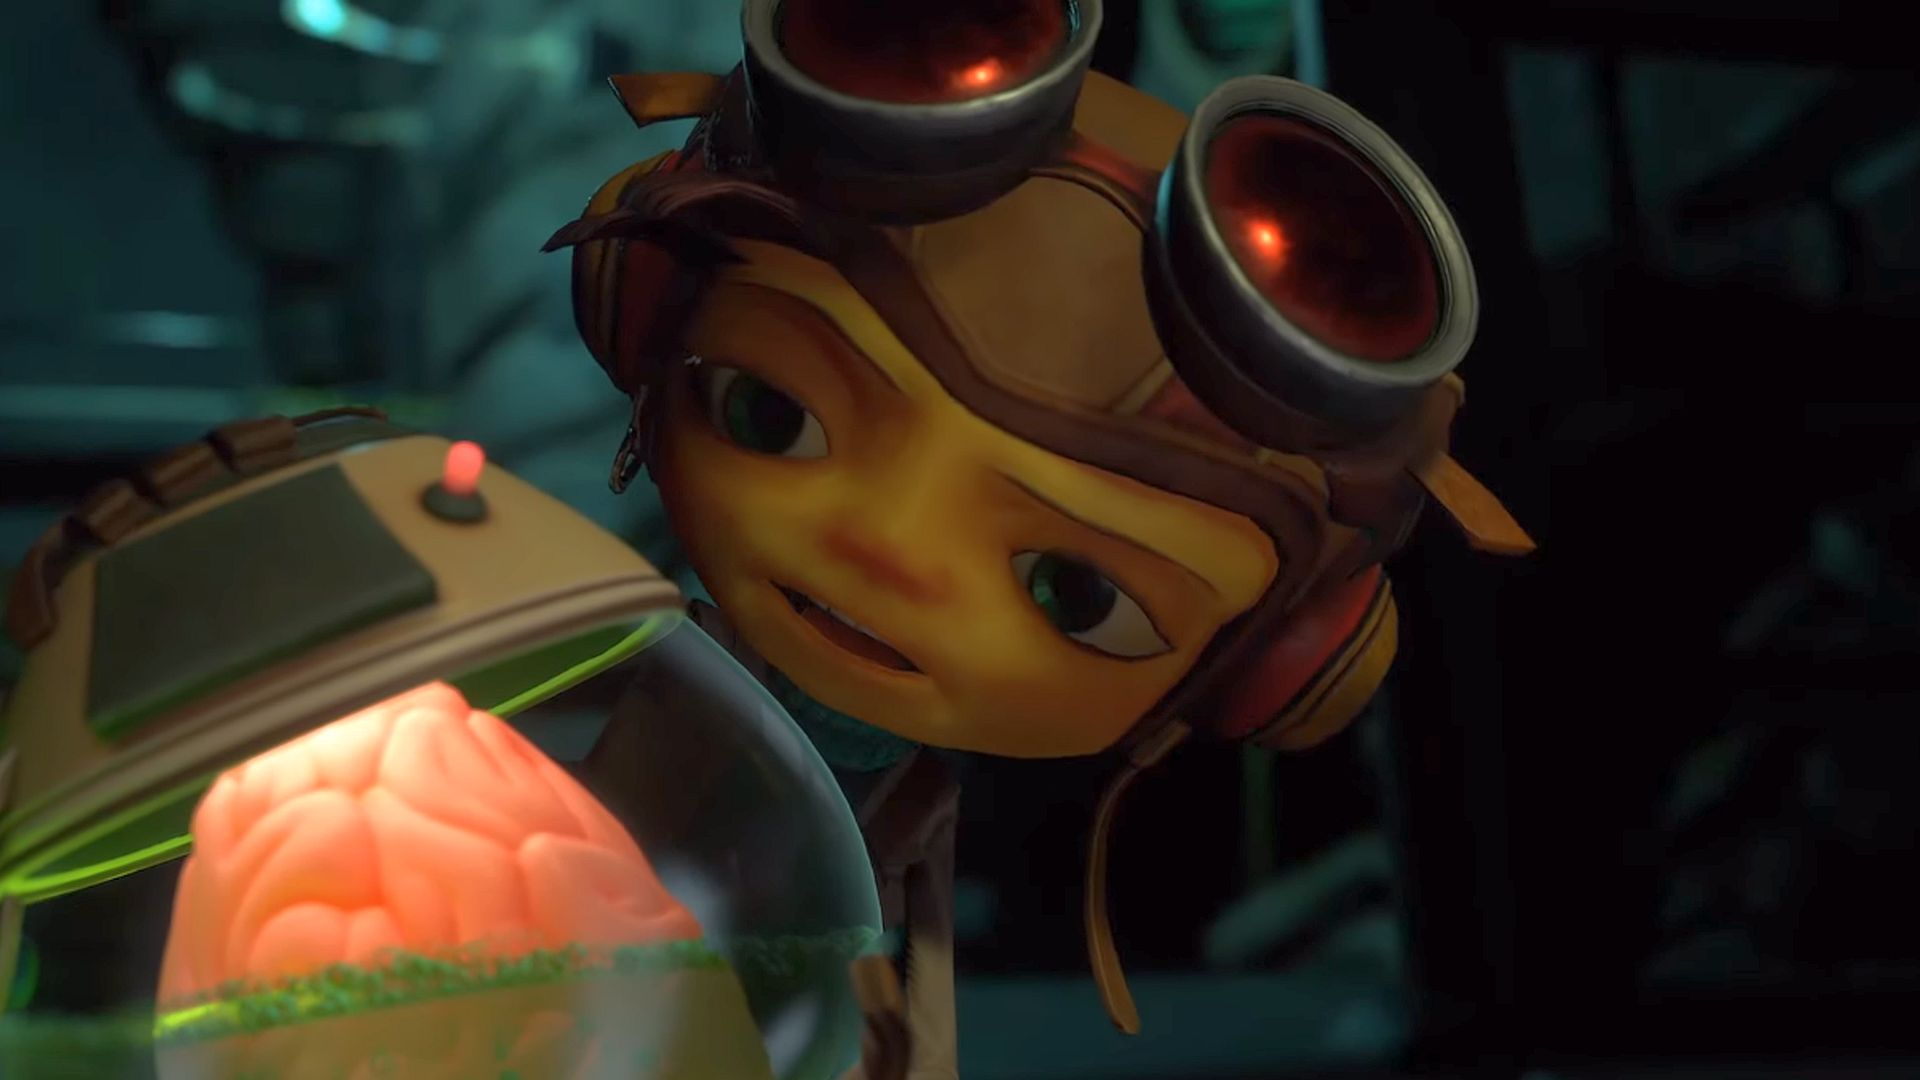 psychonauts 2 game wallpaper 72642